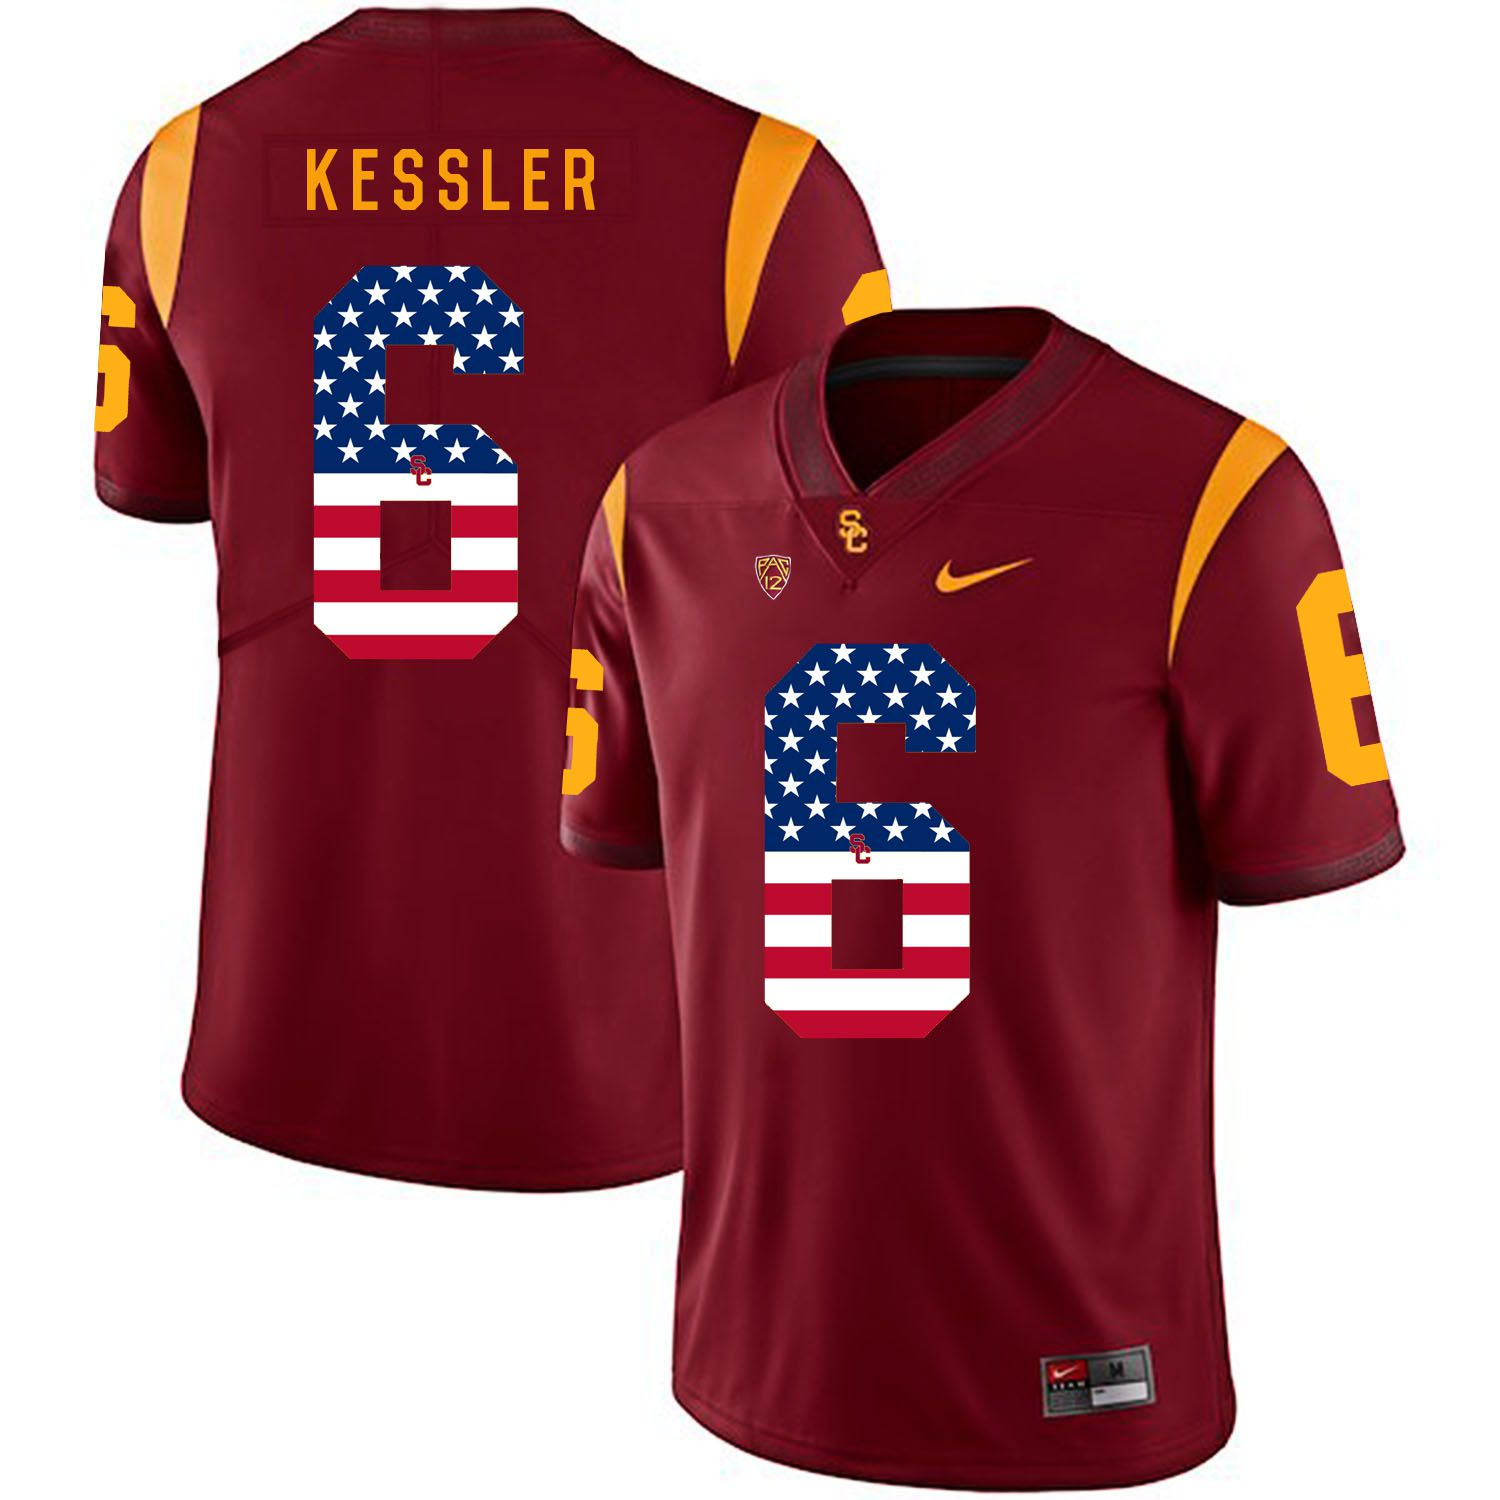 Men USC Trojans 6 Kessler Red Flag Customized NCAA Jerseys